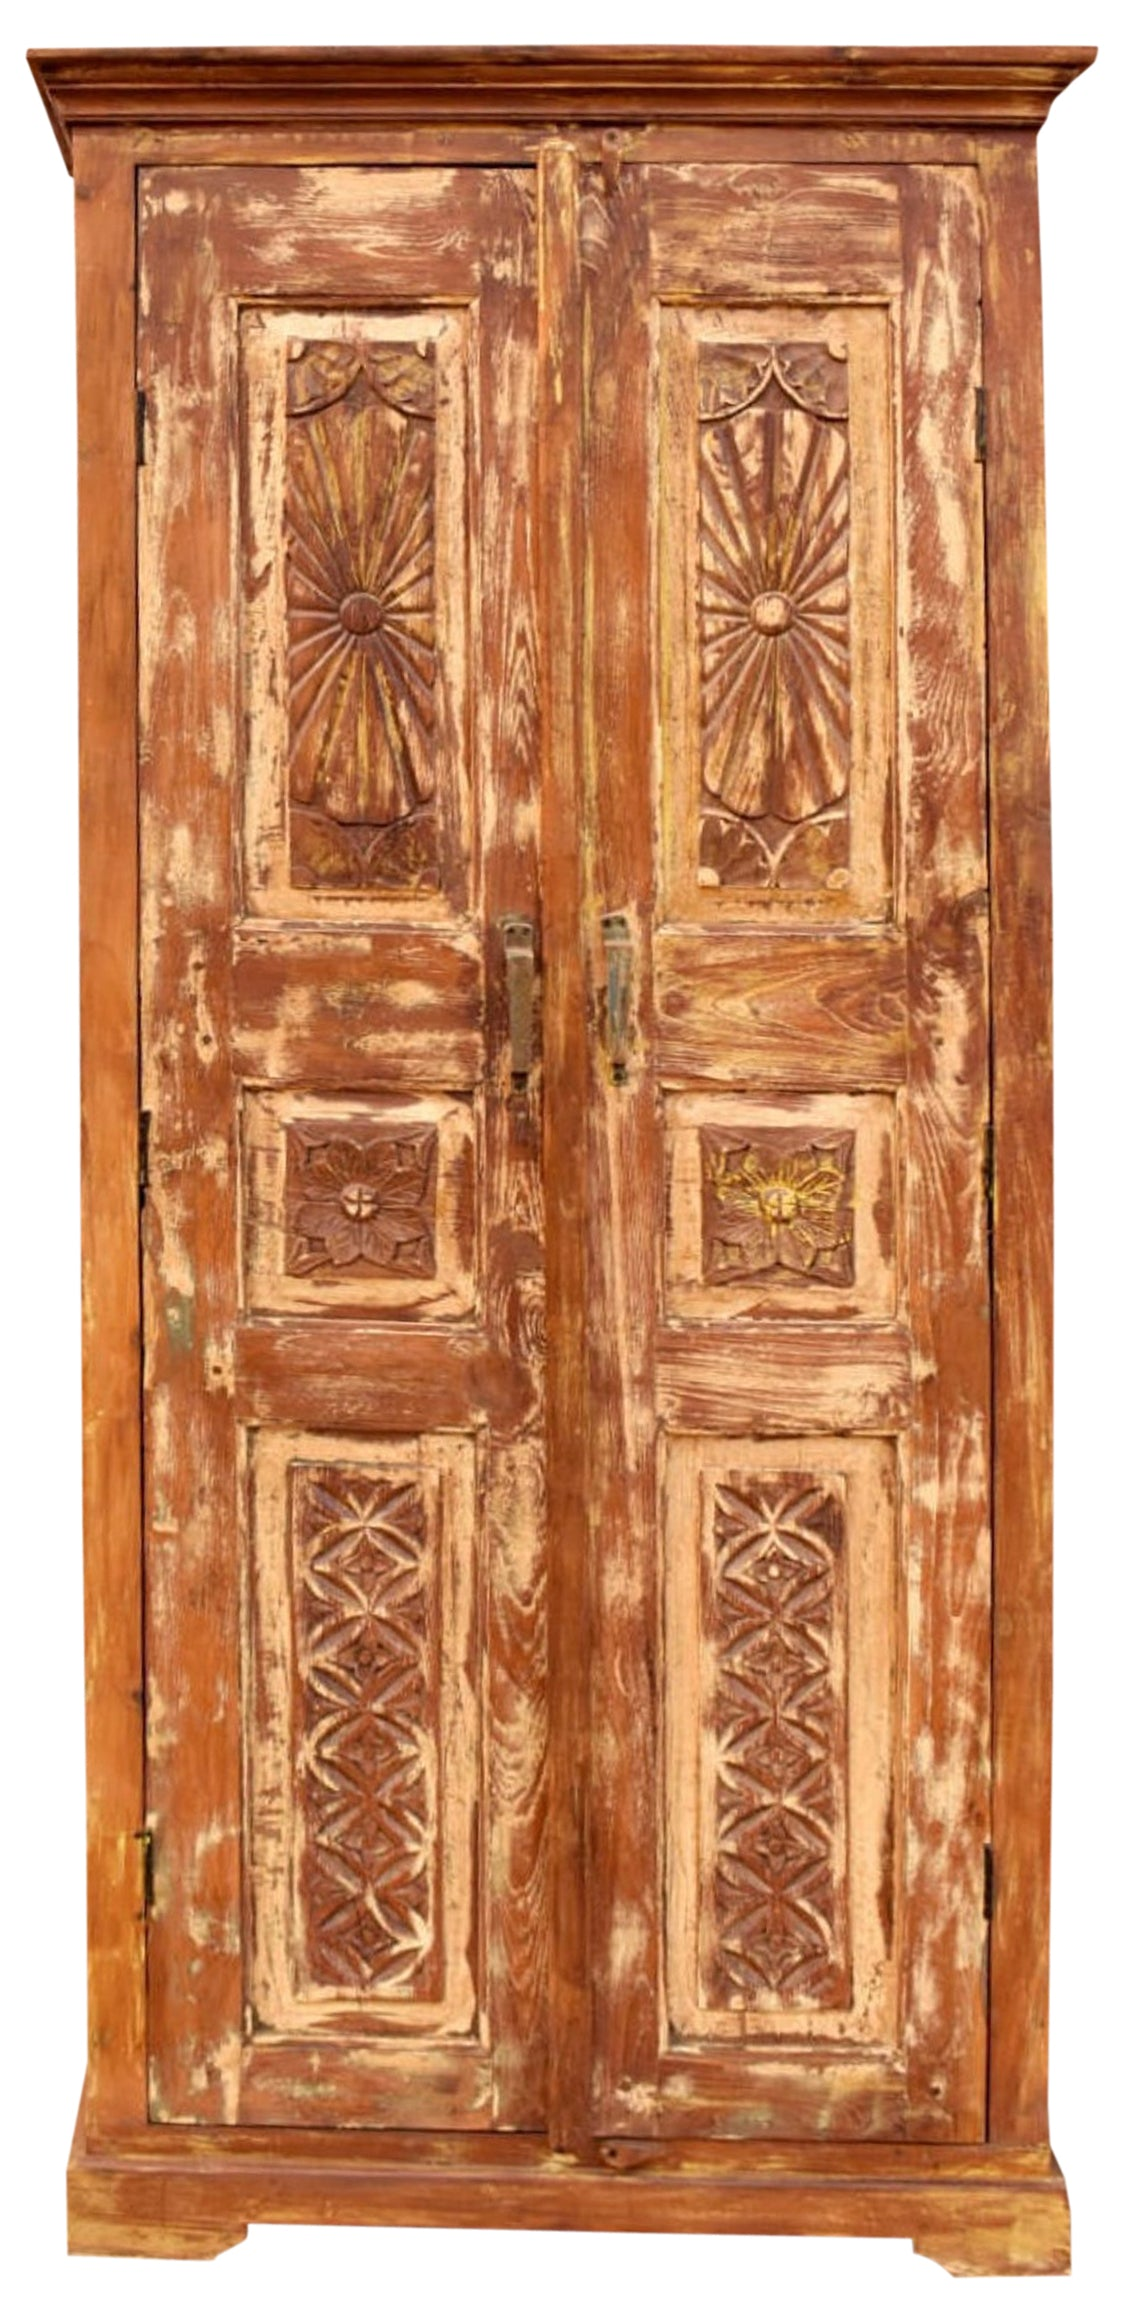 Rustic Chakra Armoire, Floral Carved Cabinet, Vintage Reclaimed Wood  Handcrafted Storage Chest, Farmhouse Kitchen Decor 9X9